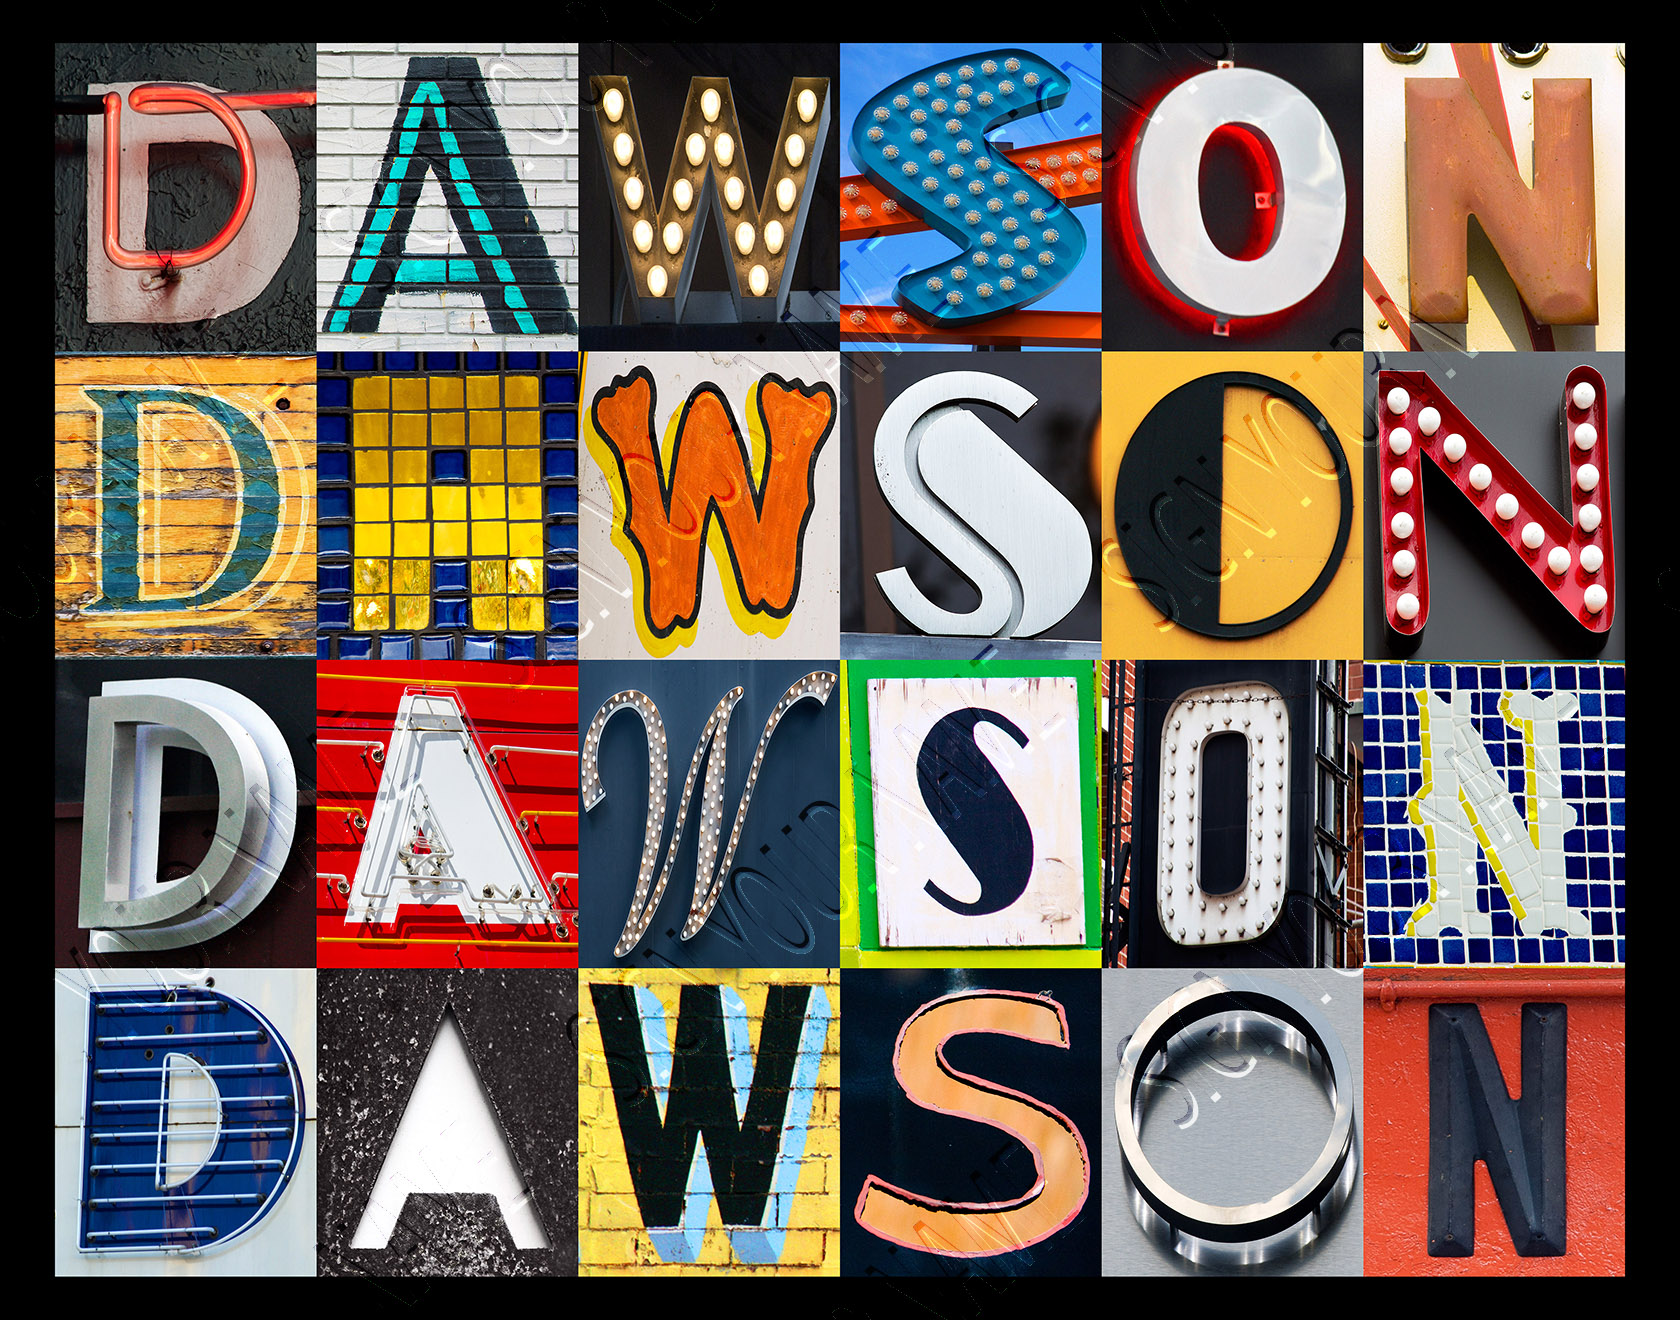 https://www.etsy.com/listing/250869829/personalized-poster-featuring-dawson-in?ref=shop_home_active_7